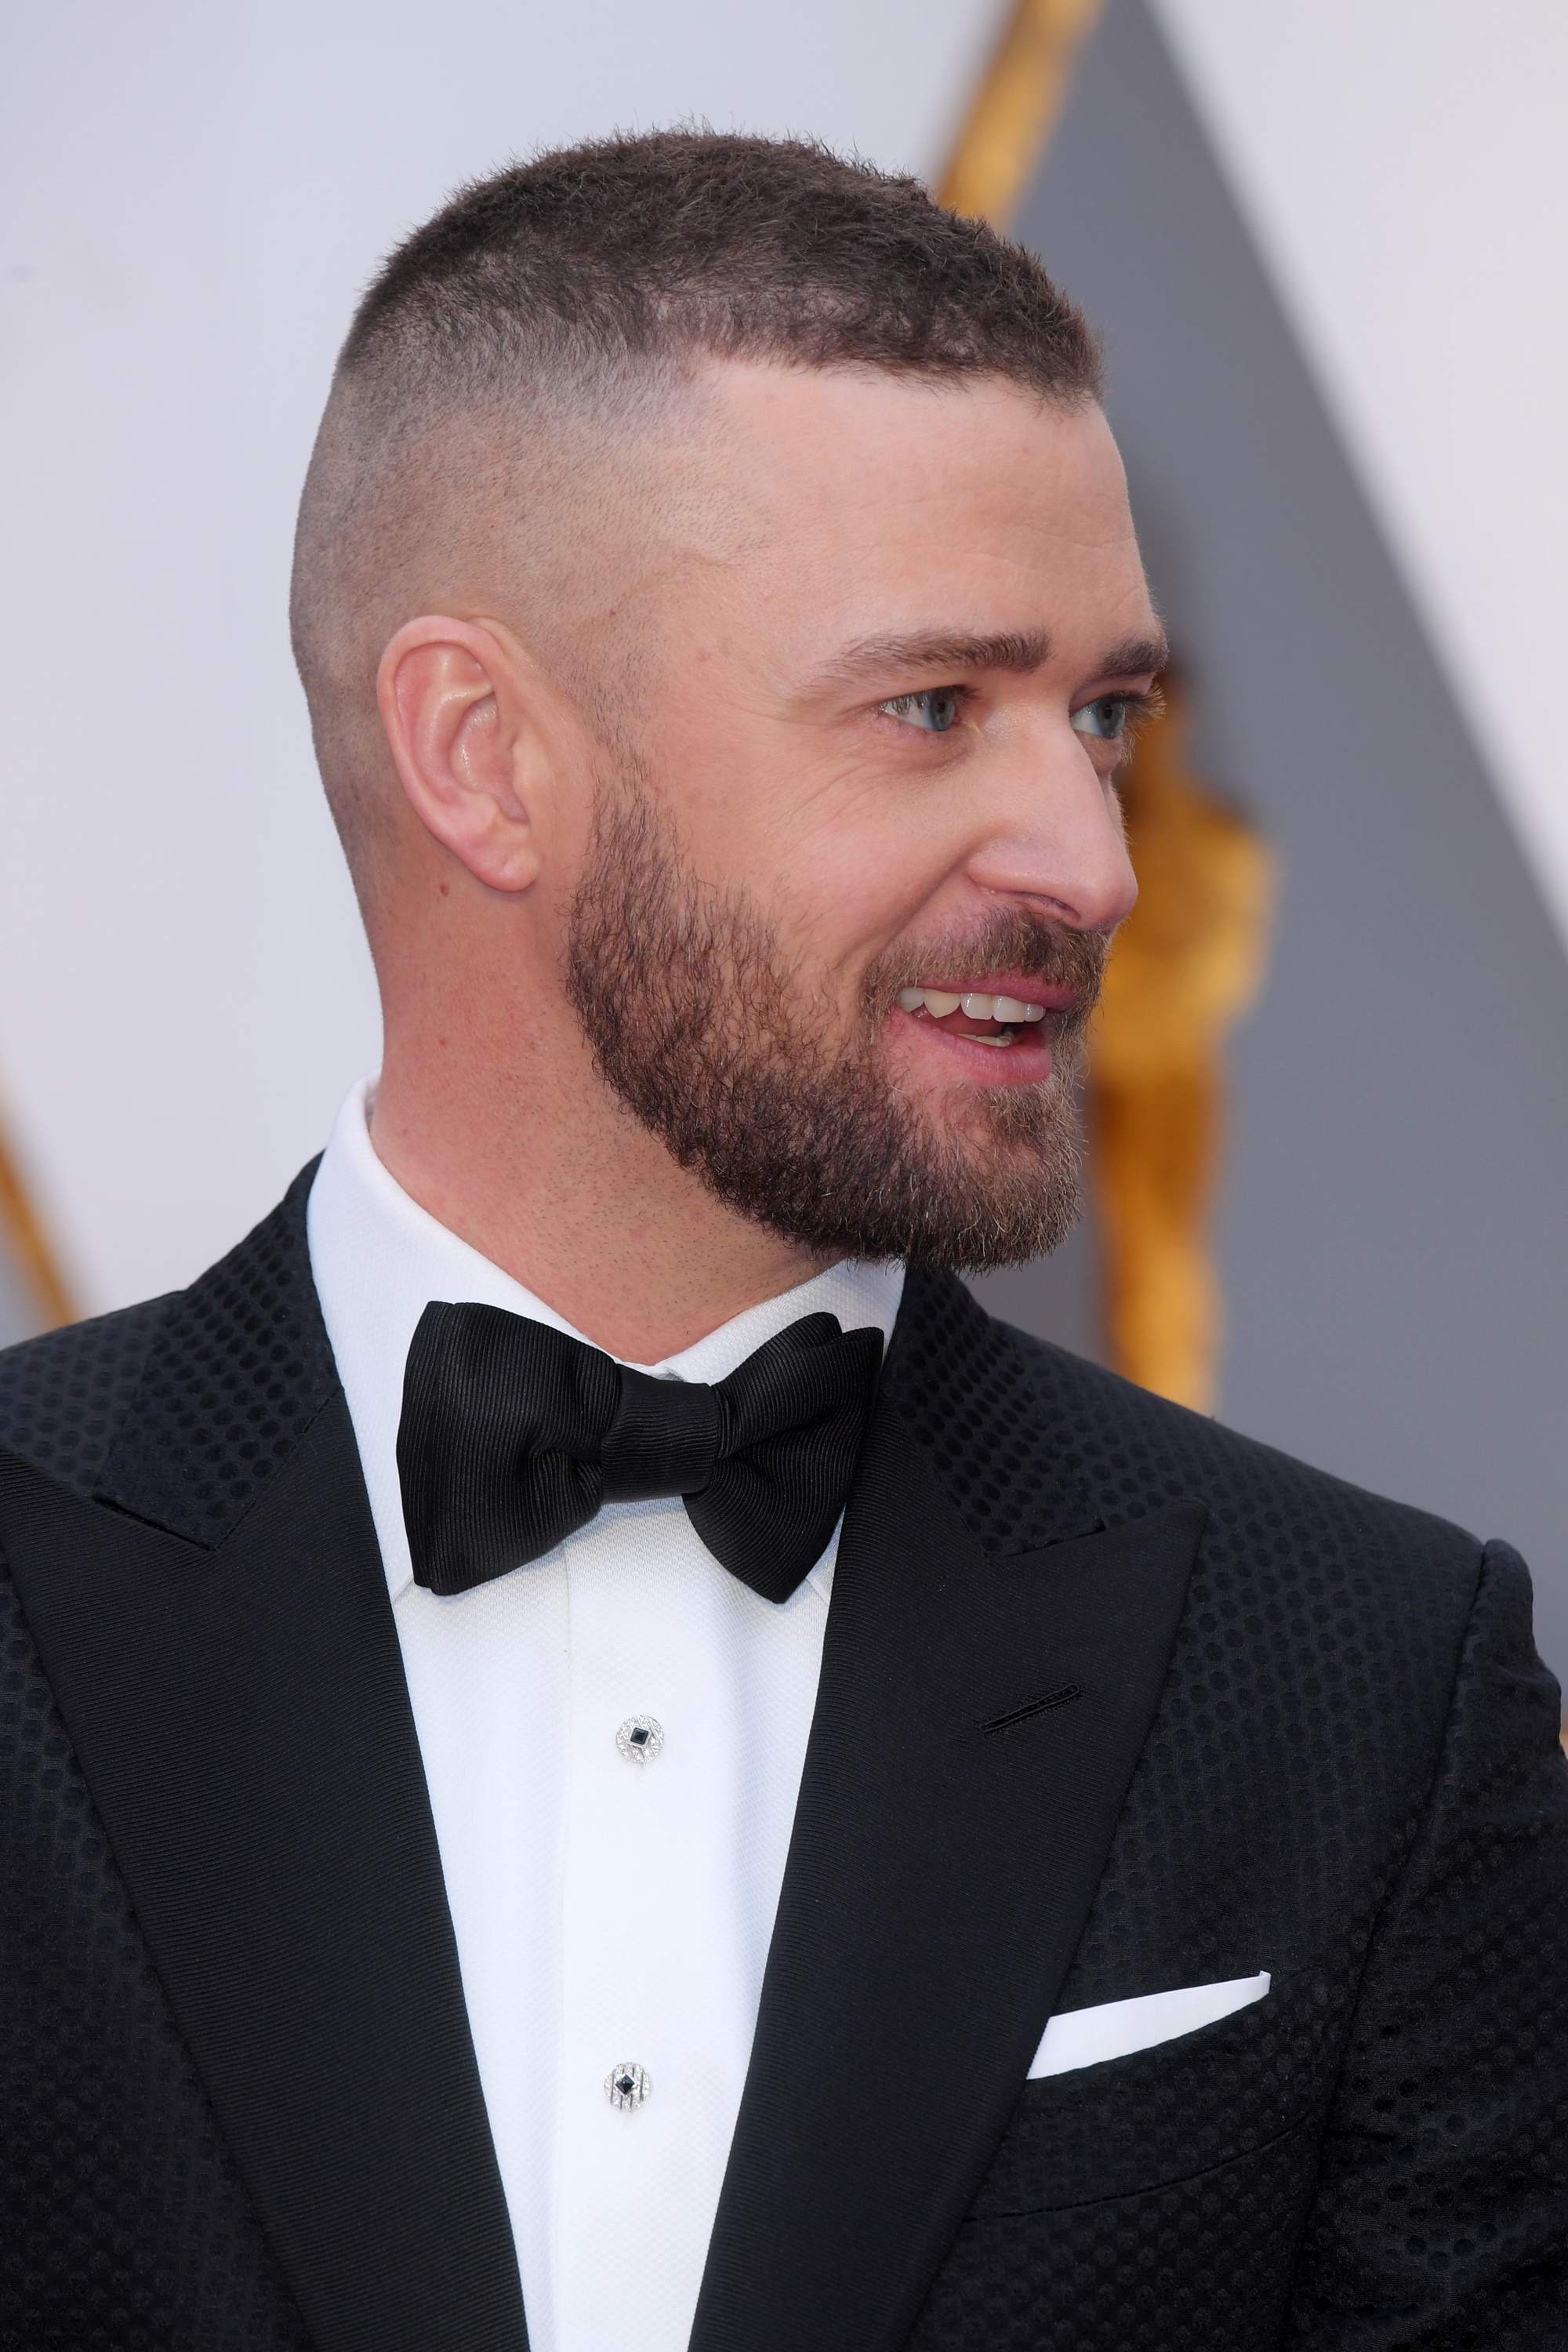 justin timberlake with short hairstyle in black suit and bow tie at the 89th Academy Awards